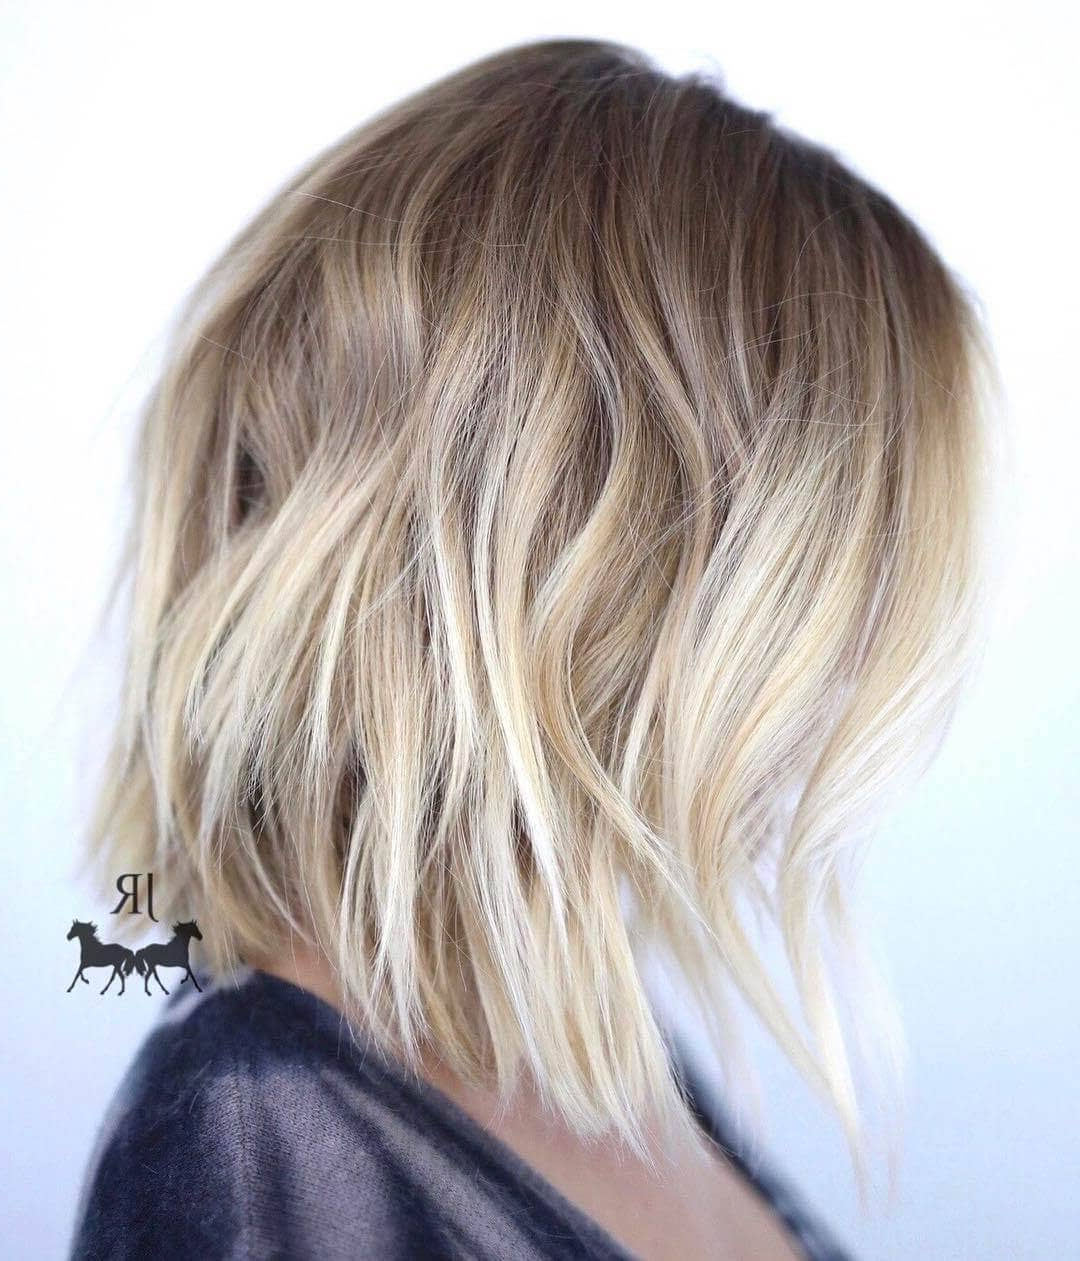 50 Fresh Short Blonde Hair Ideas To Update Your Style In 2018 Regarding Short Layered Blonde Hairstyles (Gallery 12 of 20)